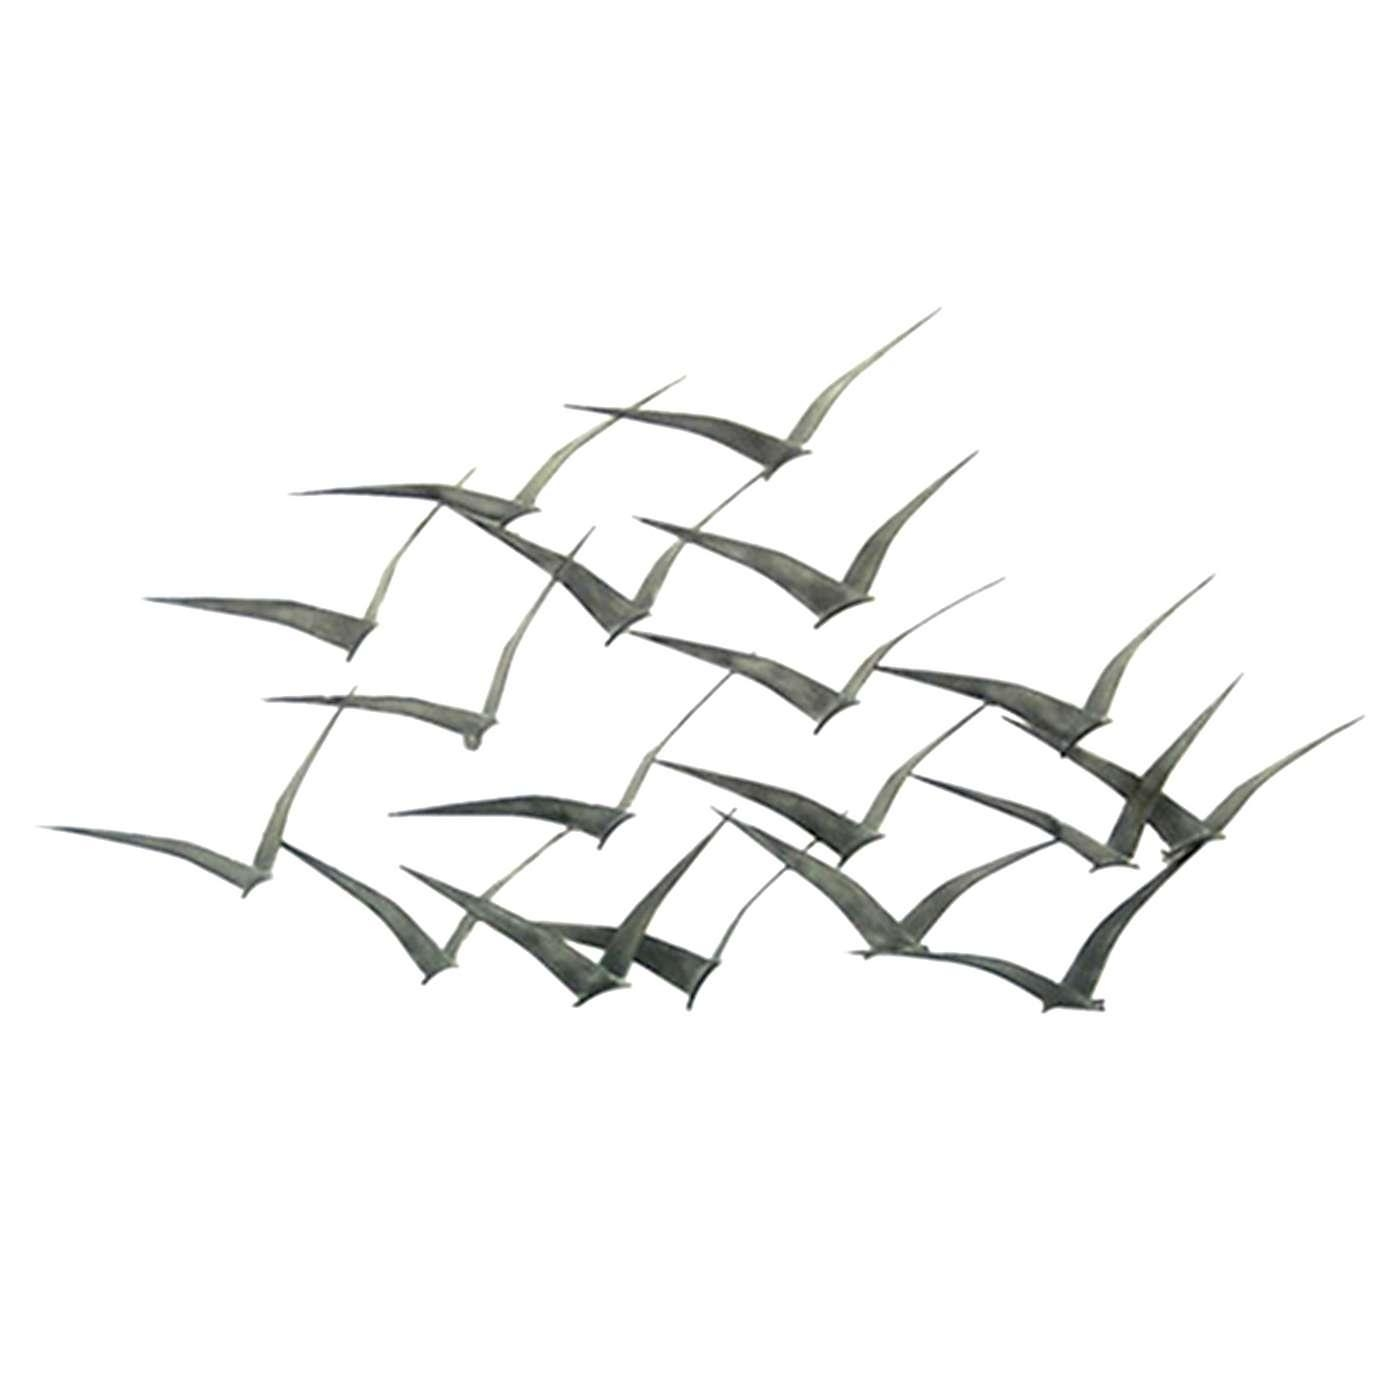 Amazing Metal Wall Art Birds On A Branch Curtis Jere Birds In Throughout Metal Wall Art Birds In Flight (View 6 of 20)